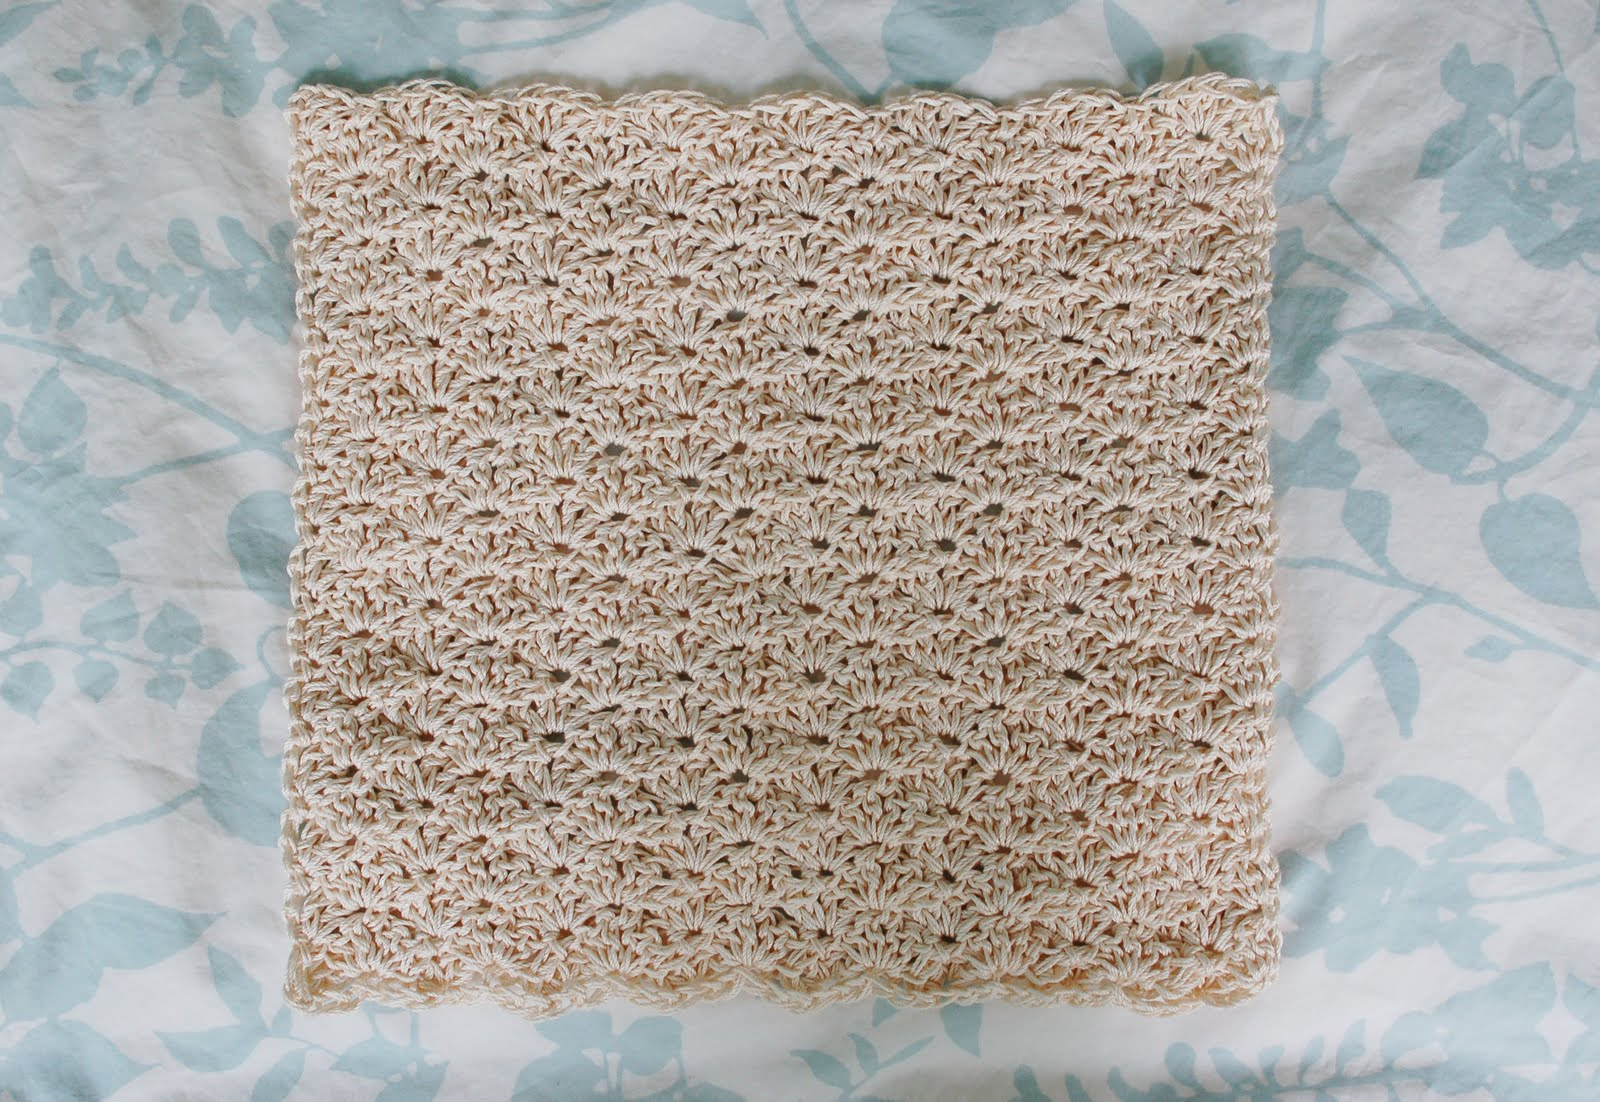 Crochet Patterns In Cotton : COTTON CROCHET FREE PATTERN COTTON CROCHET FREE PATTERN YARN ?